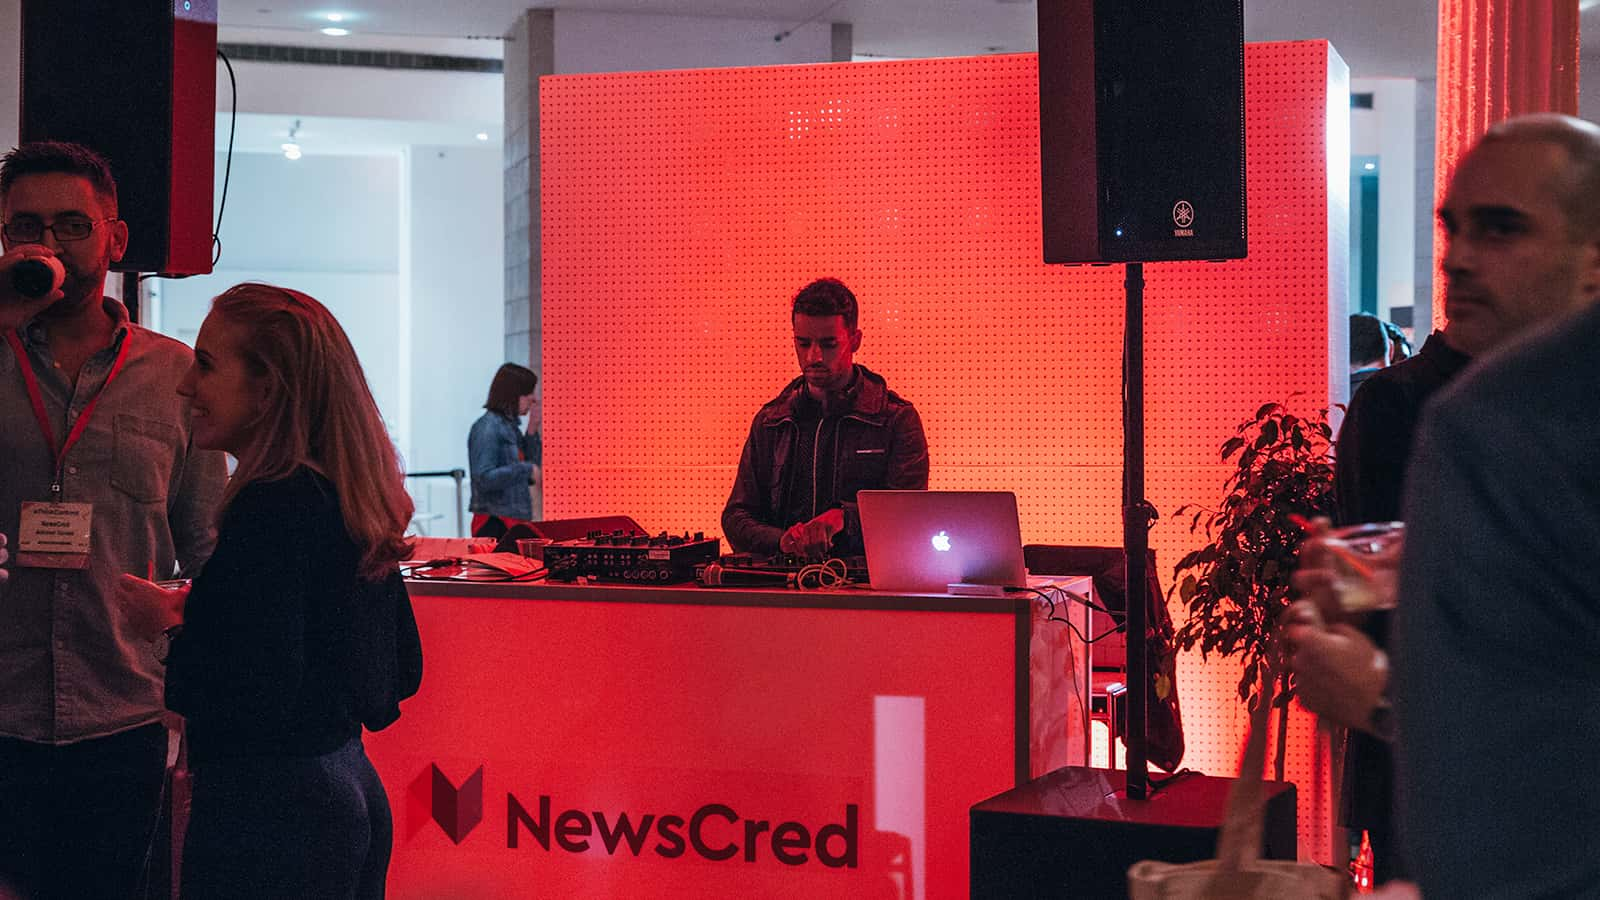 newscred thinkcontent dj